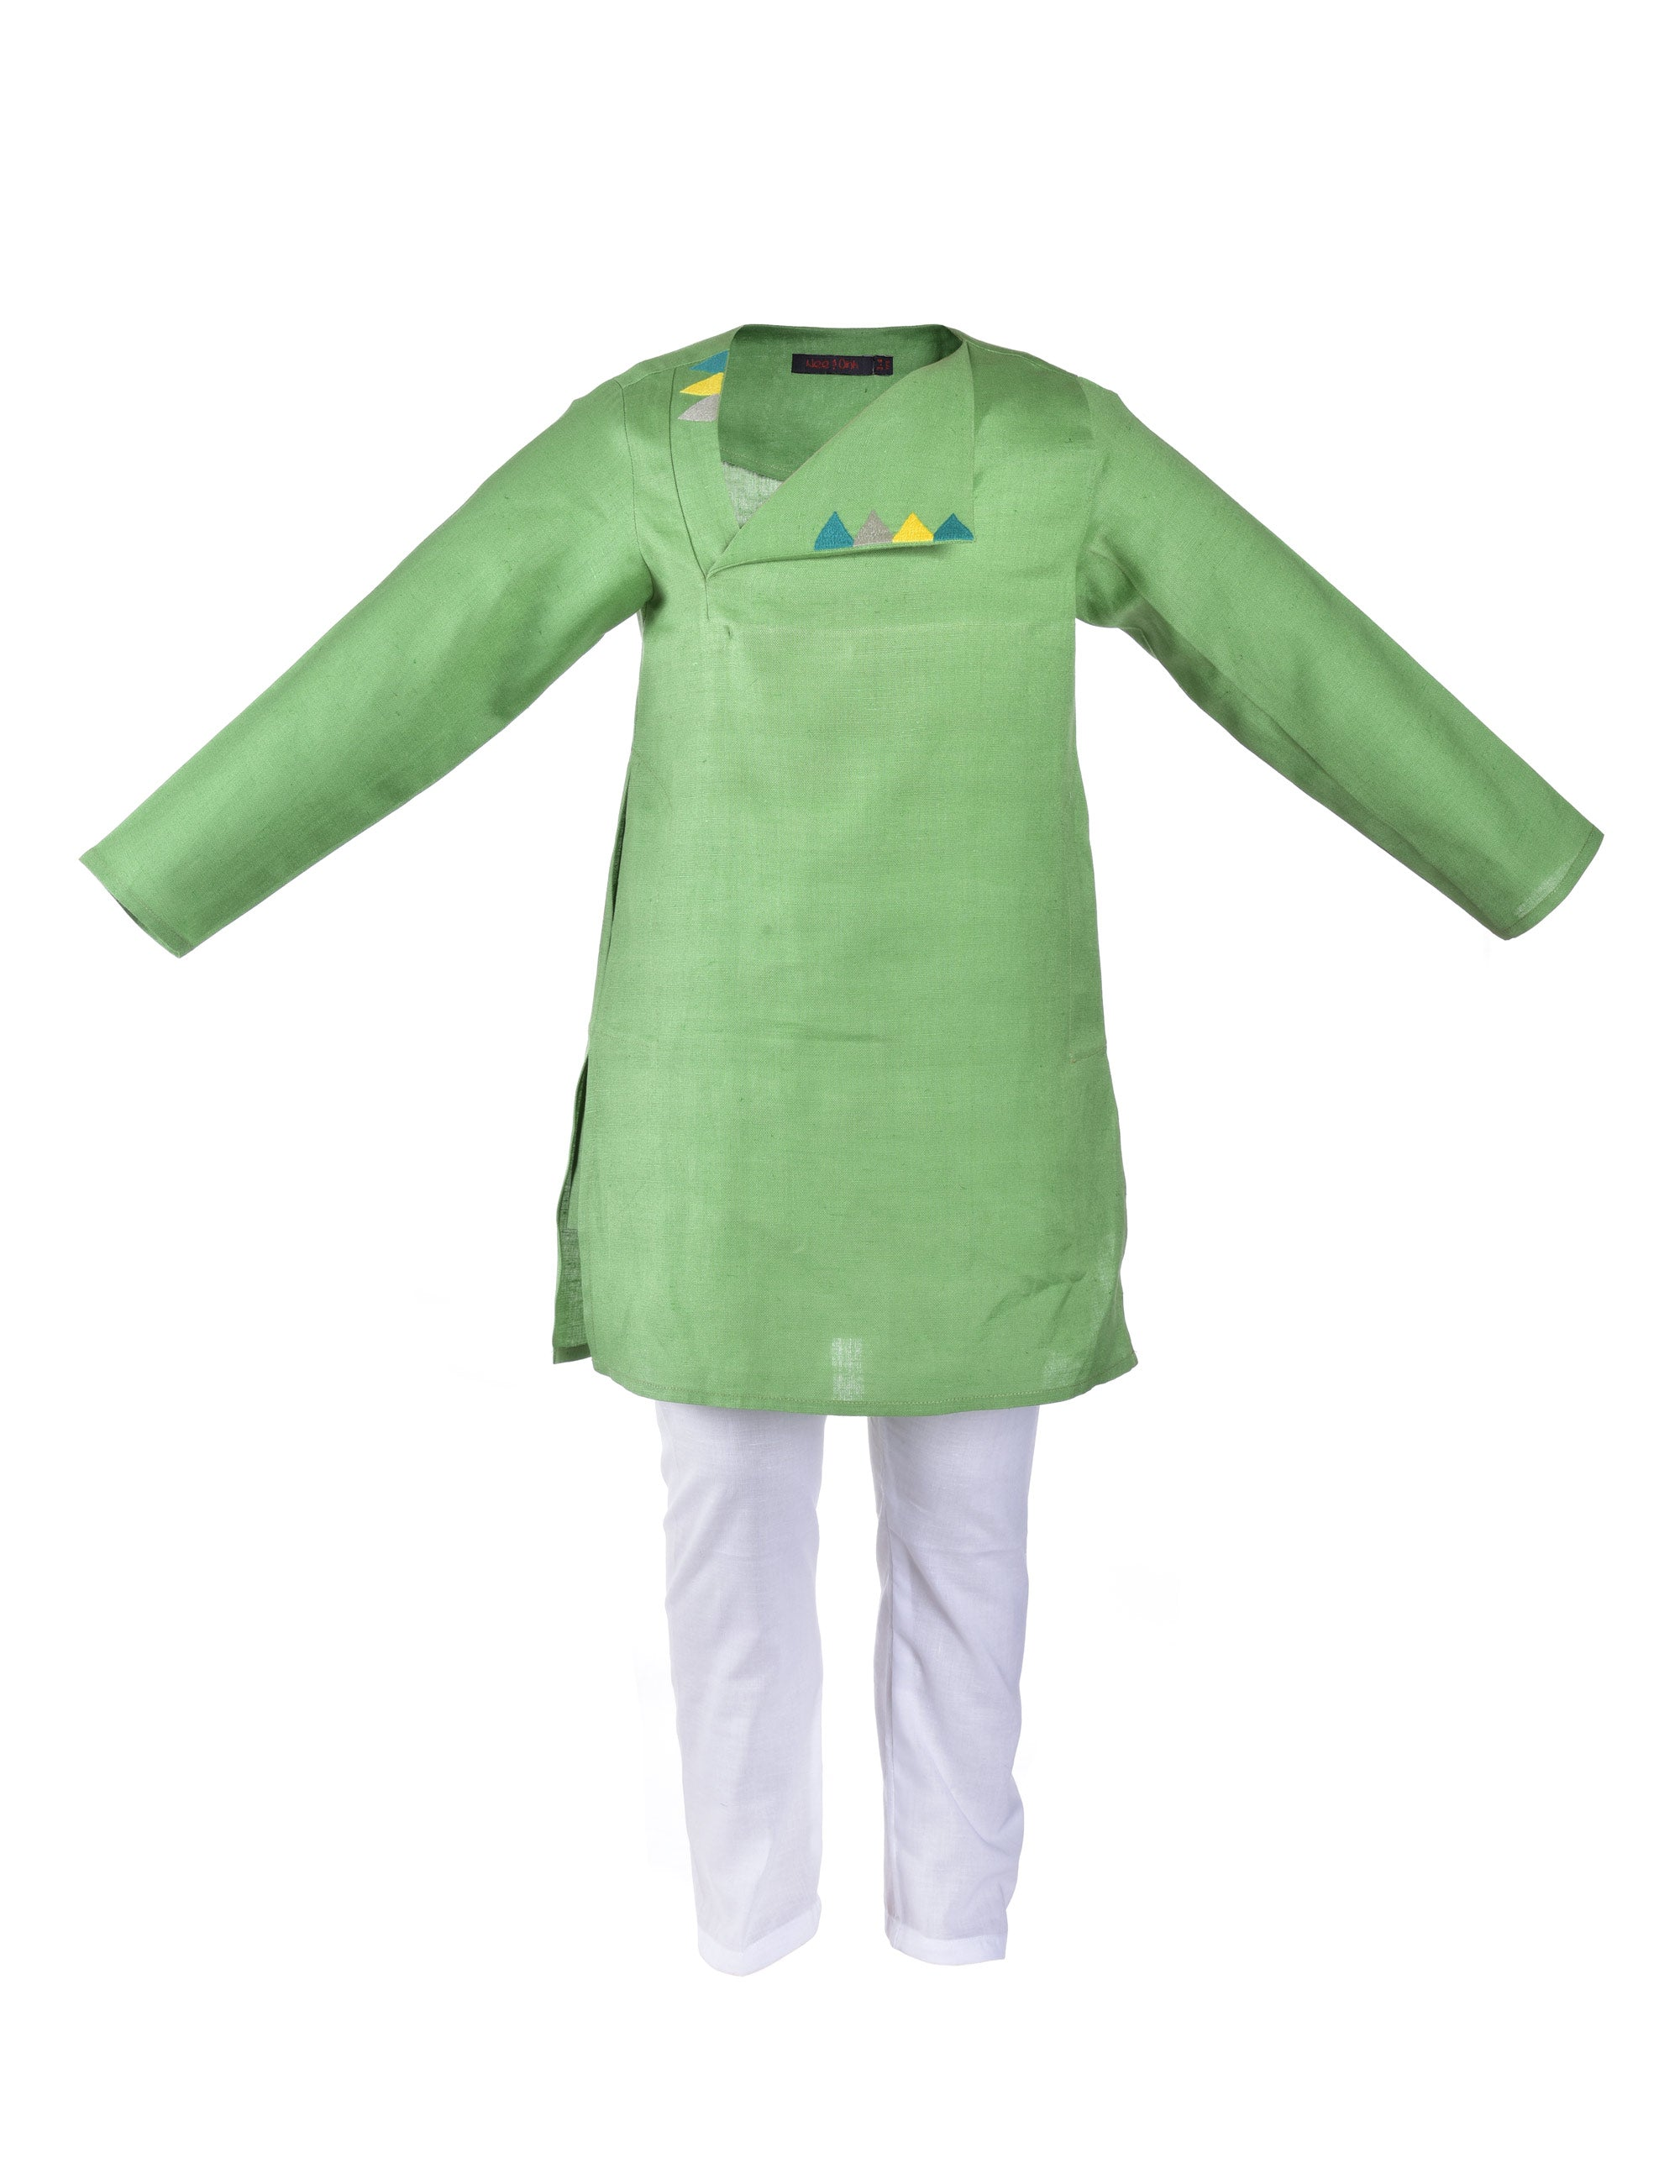 Green kurta with multicolour triangle embroidered at front